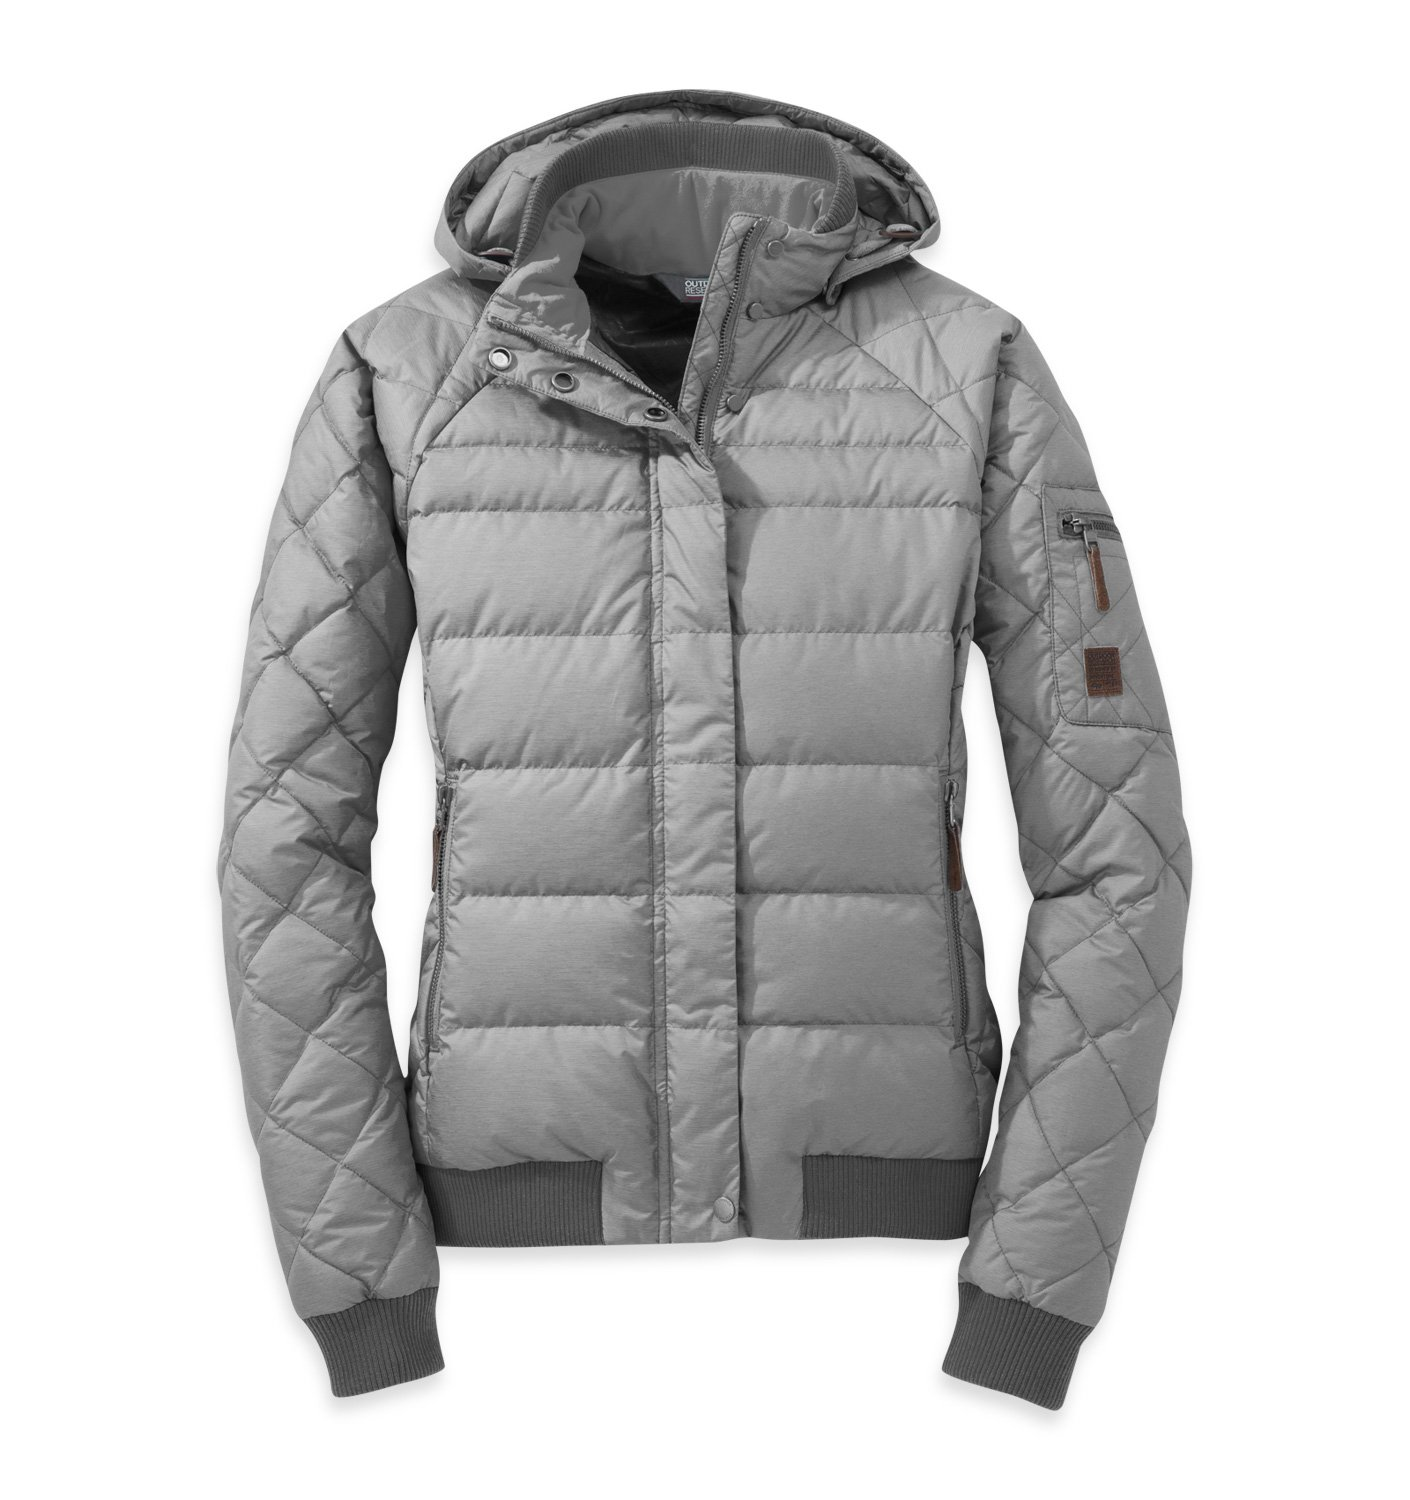 Amazon.com: Outdoor Research Women's Placid Down Jacket: Sports ...